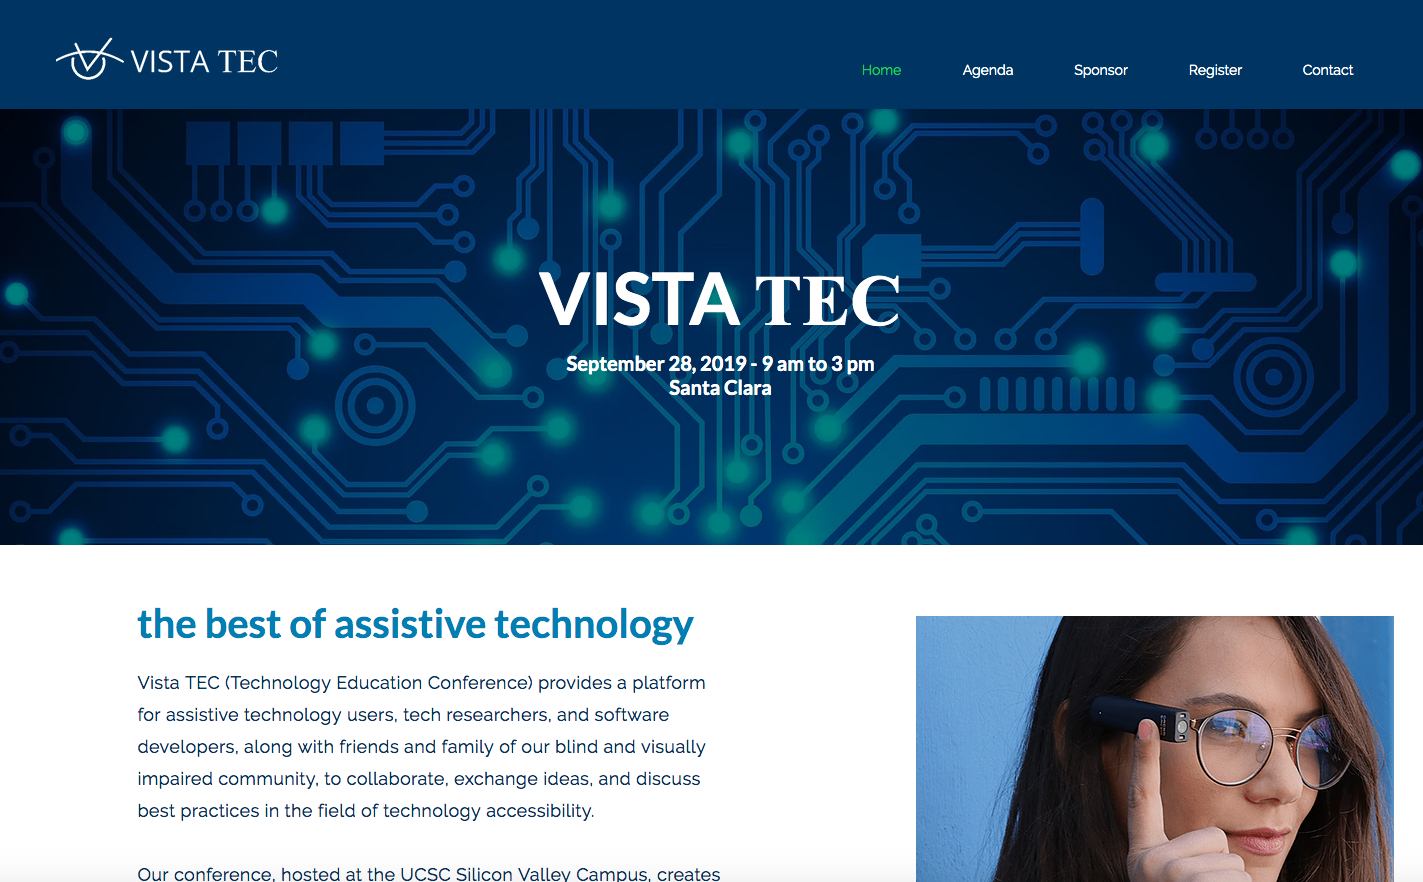 link to vistatec.org